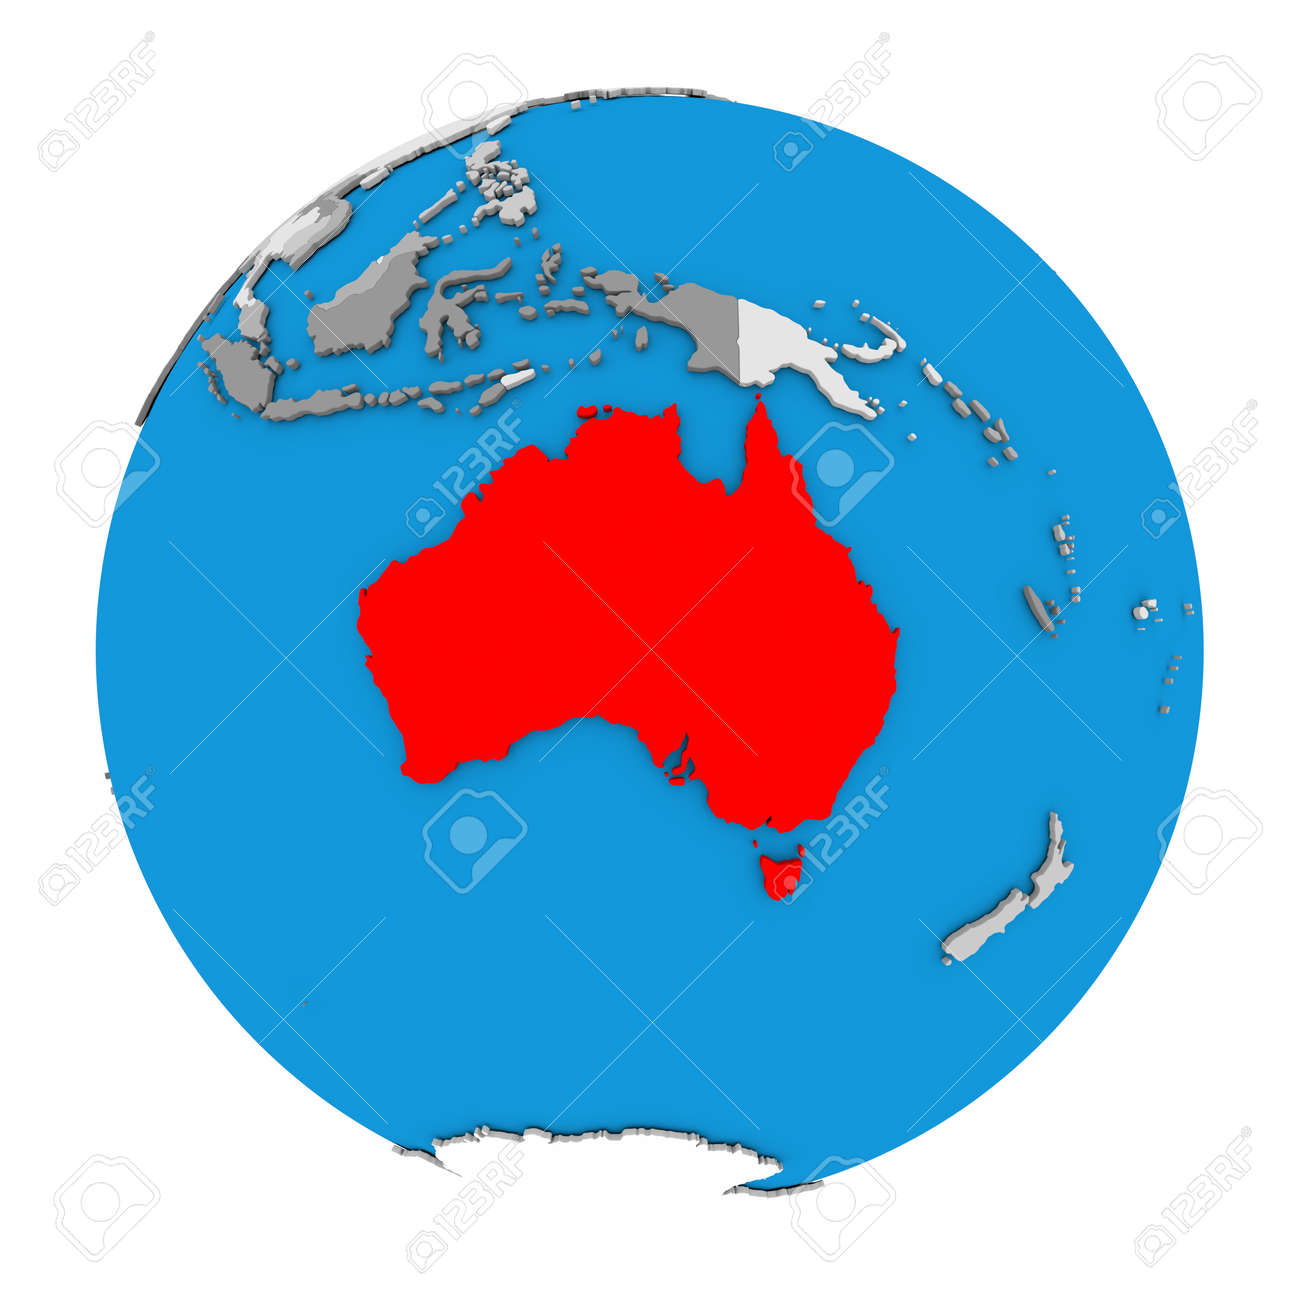 illustration map of australia highlighted in red on globe 3d illustration isolated on white background